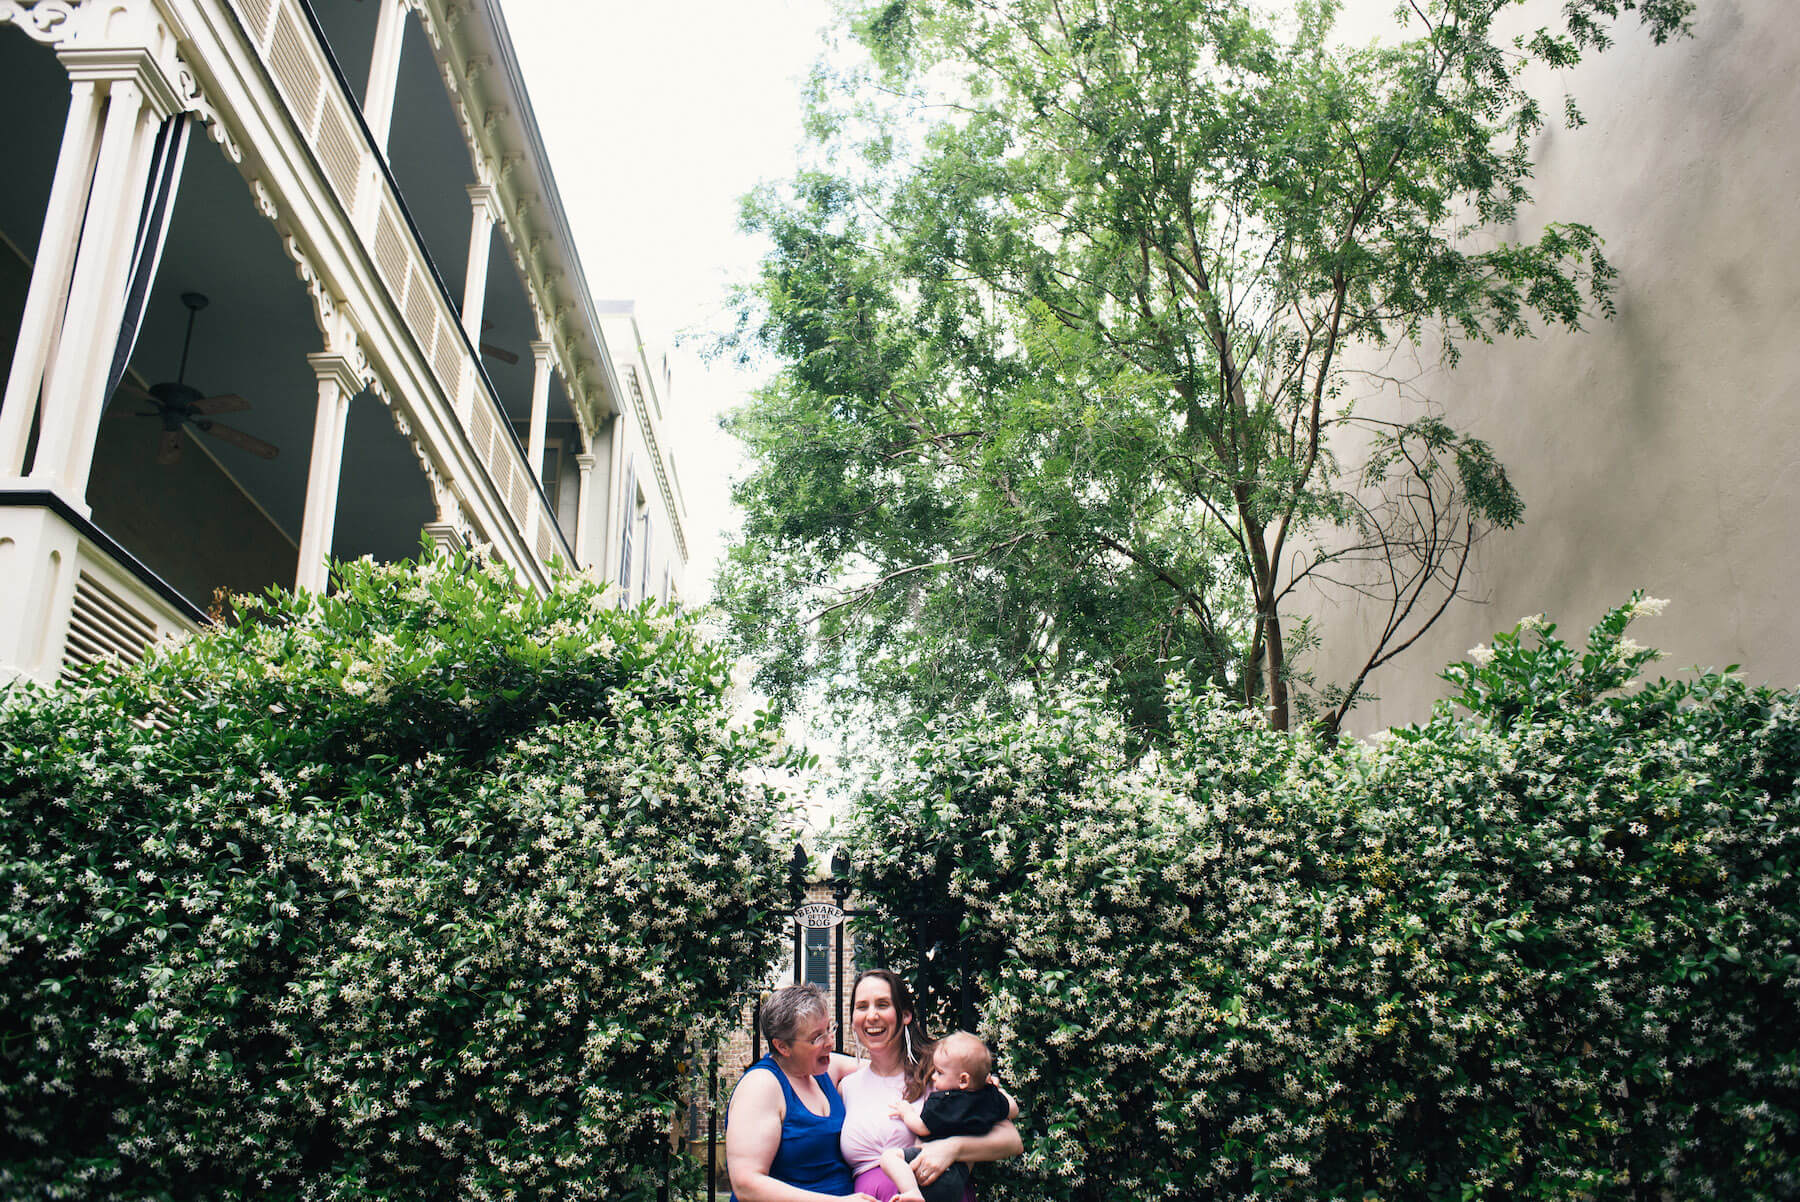 a LGBTQ Couple with their child in front of a historic building in Savannah, Georgia, United States of America